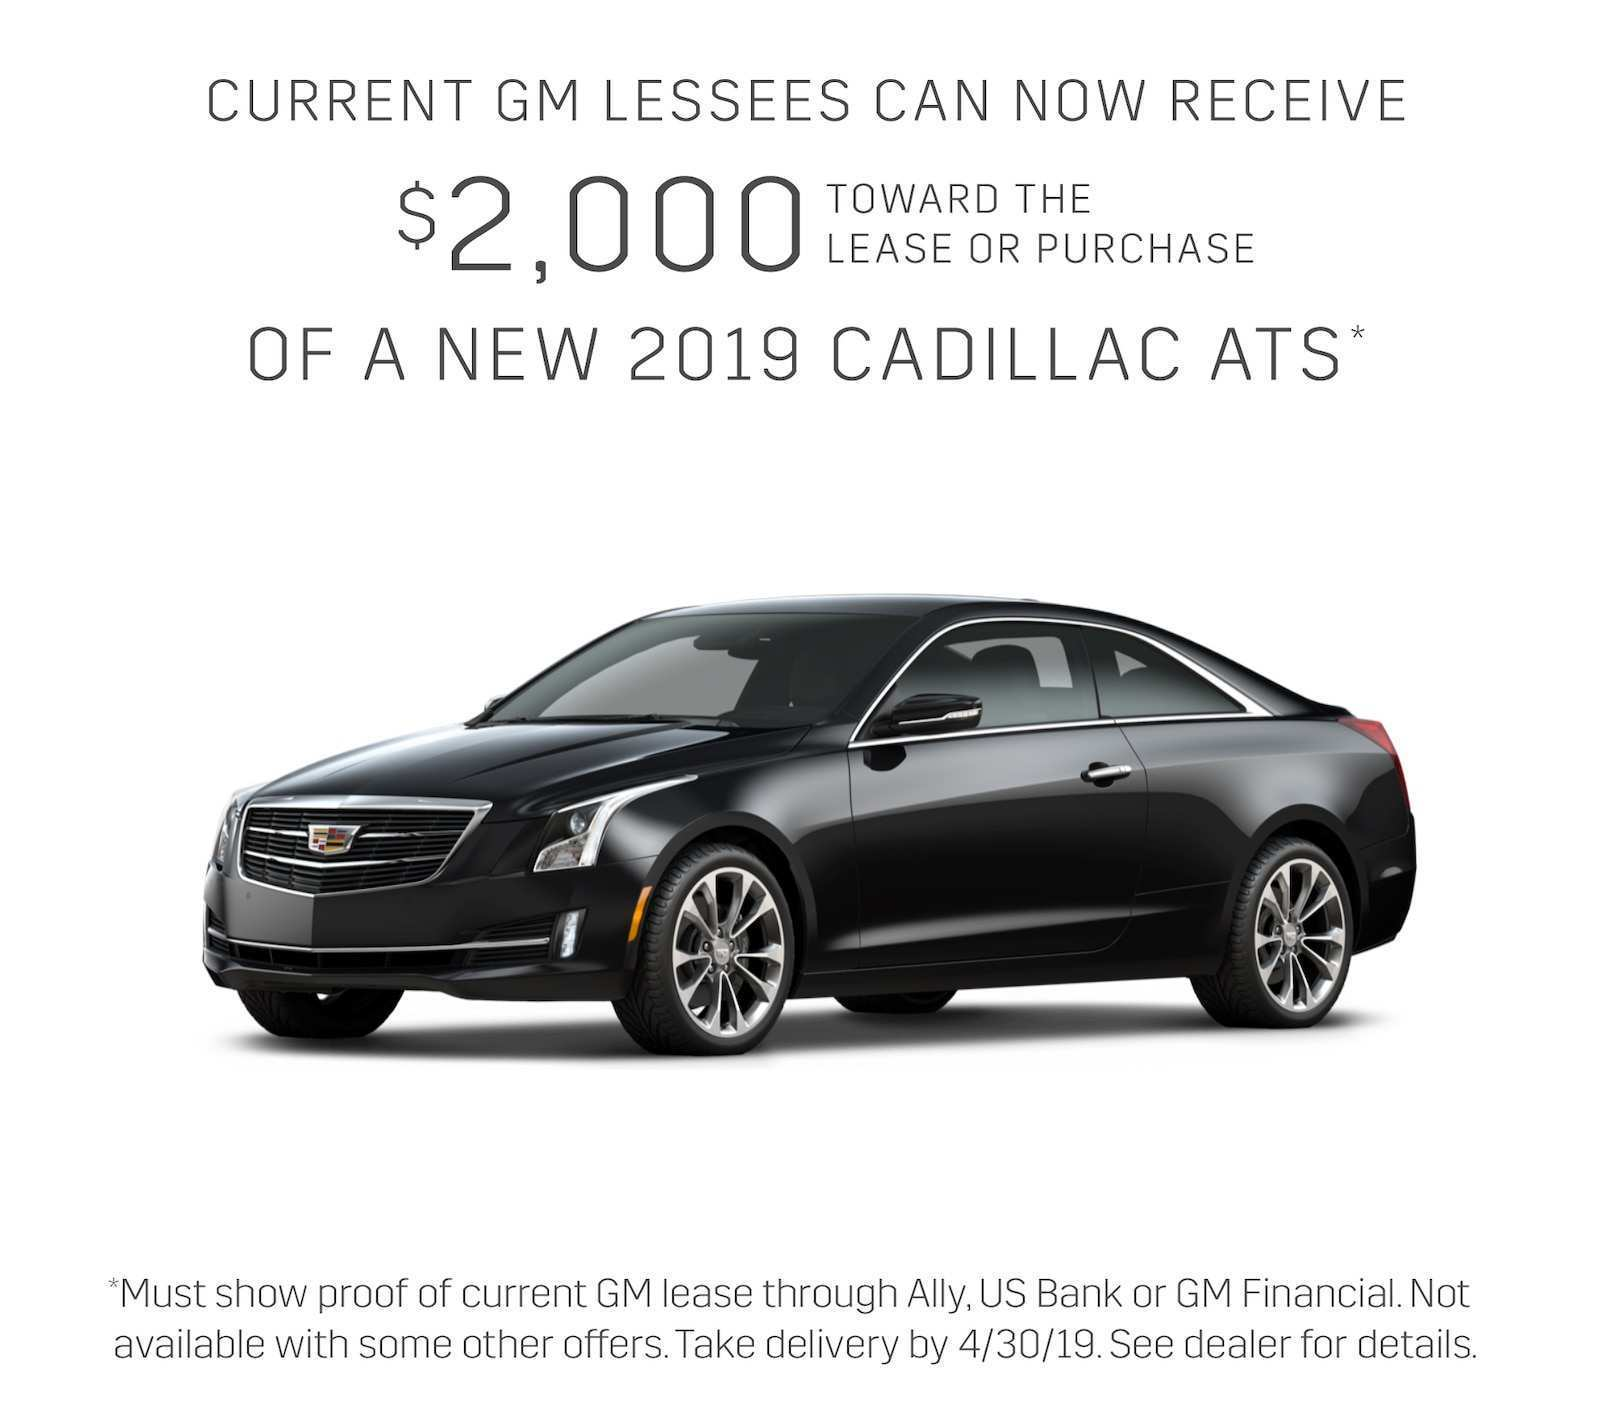 24 Great 2019 Cadillac Lease Picture for 2019 Cadillac Lease